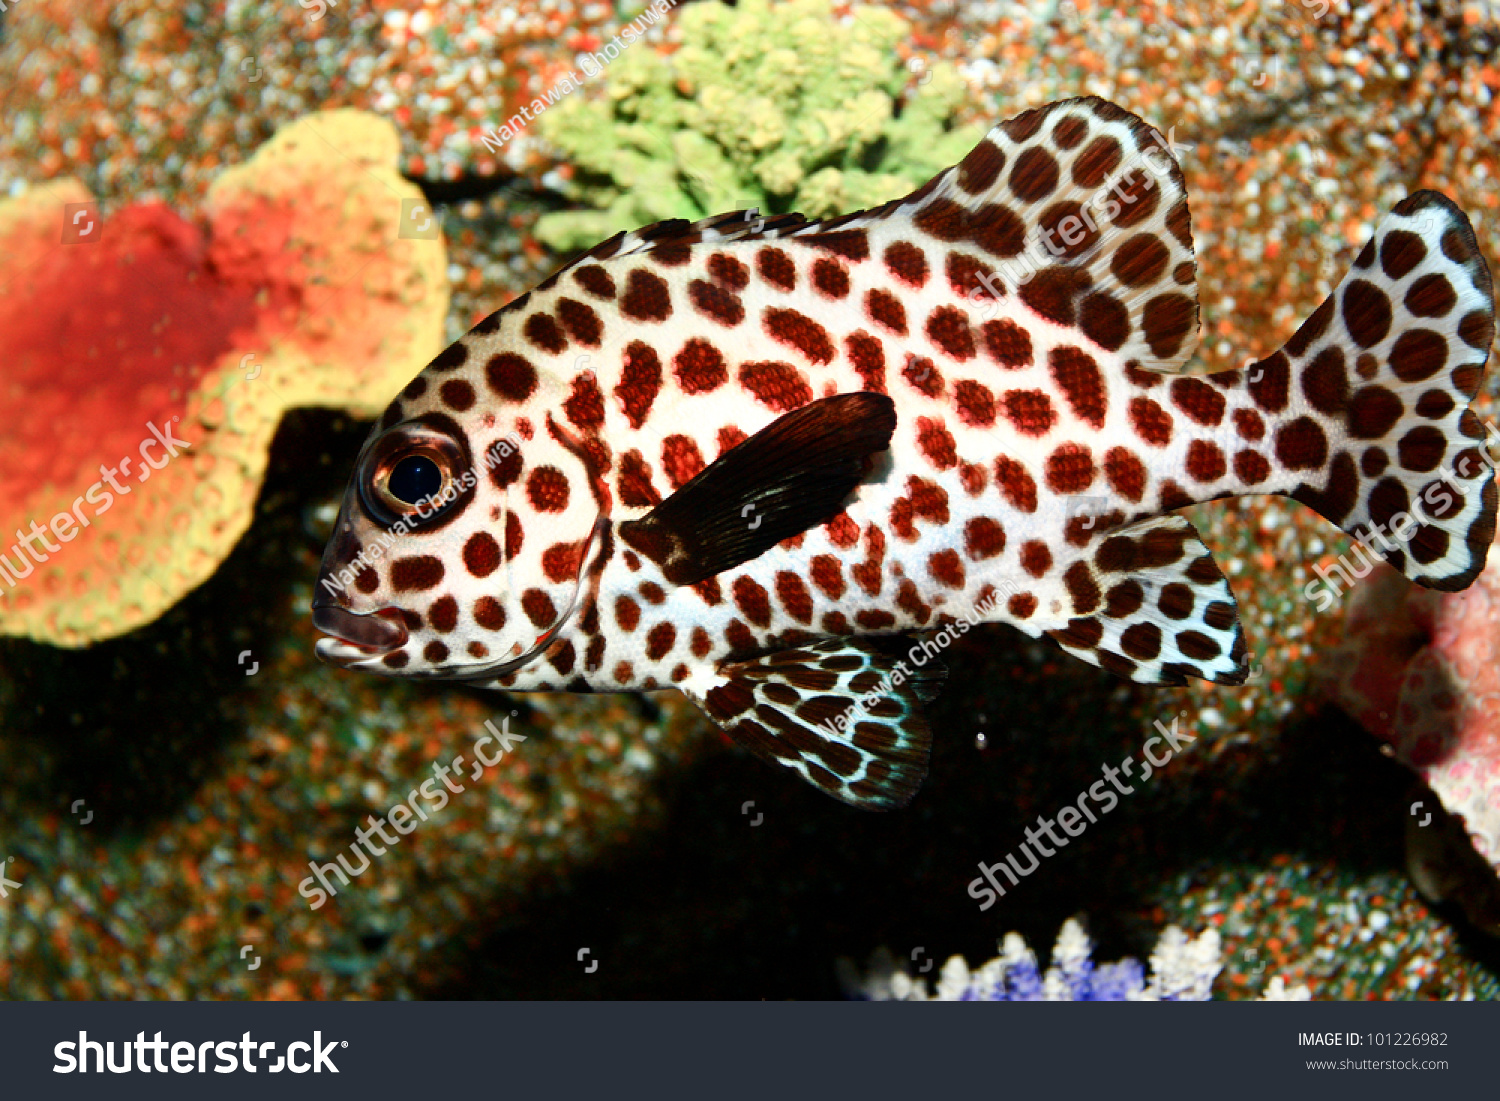 Spotted sweetlips fish stock photo 101226982 shutterstock for Sweet lips fish